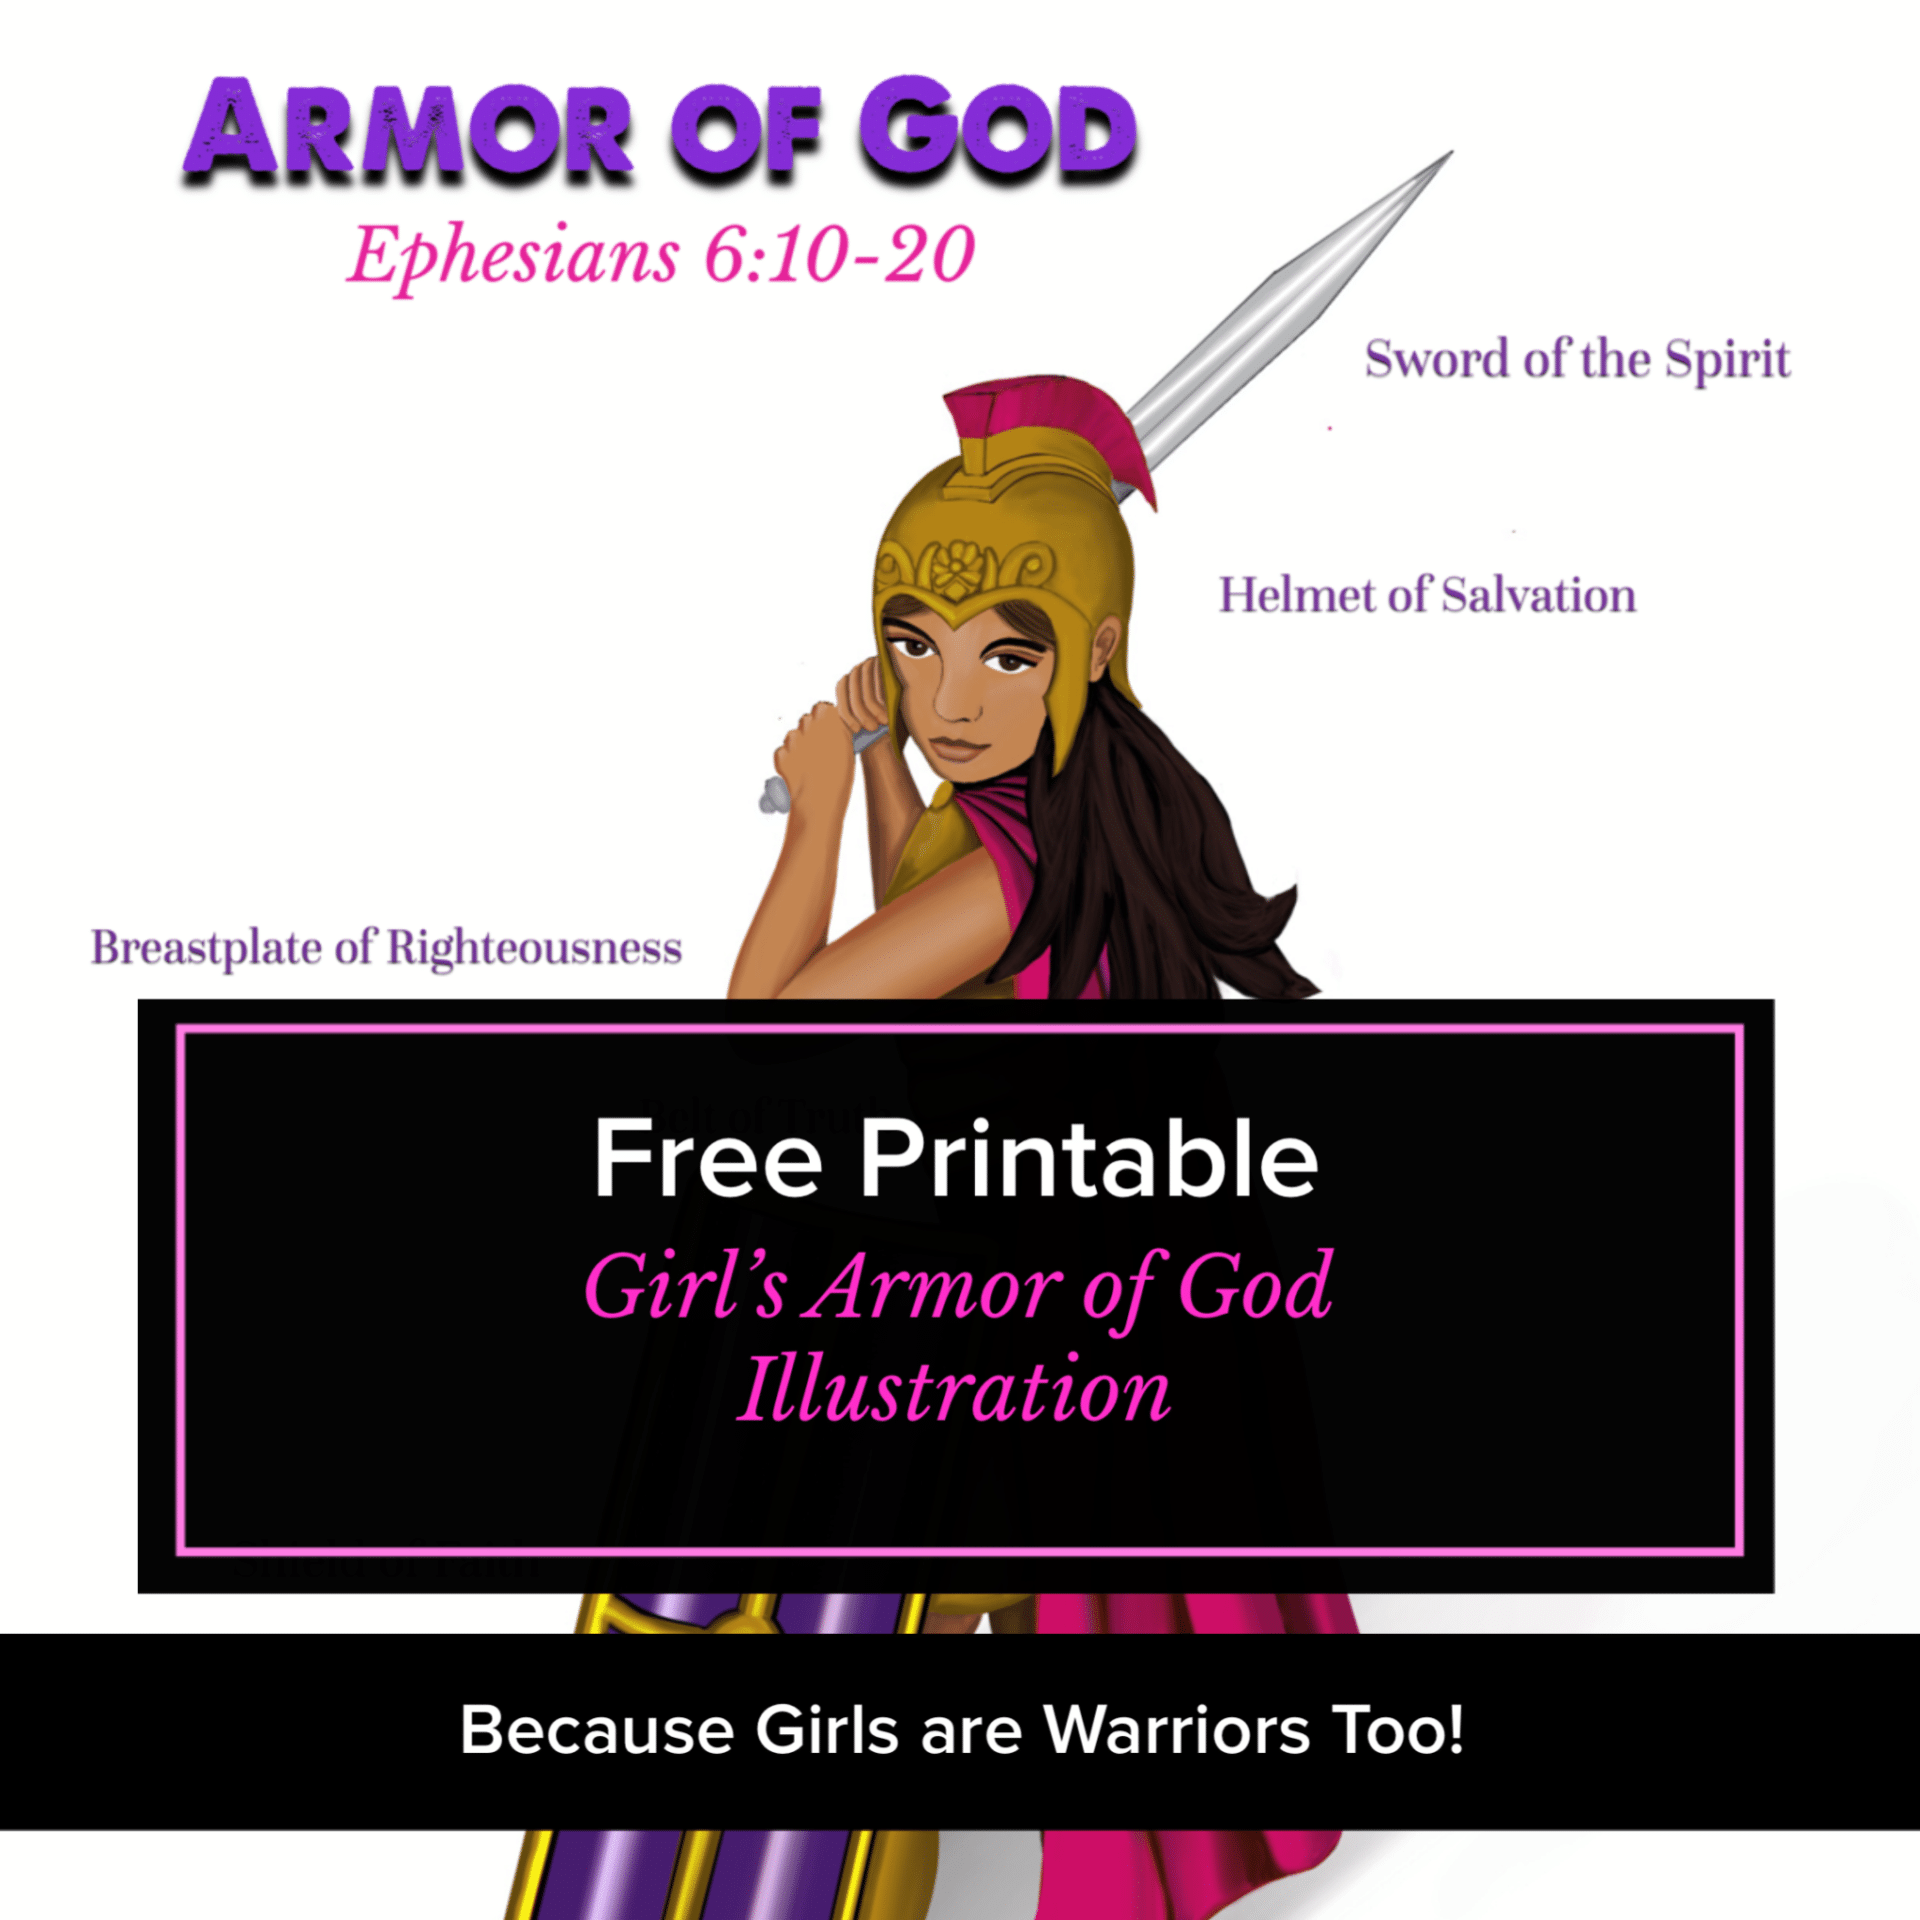 Free armor of God printable because girls are warriors too!